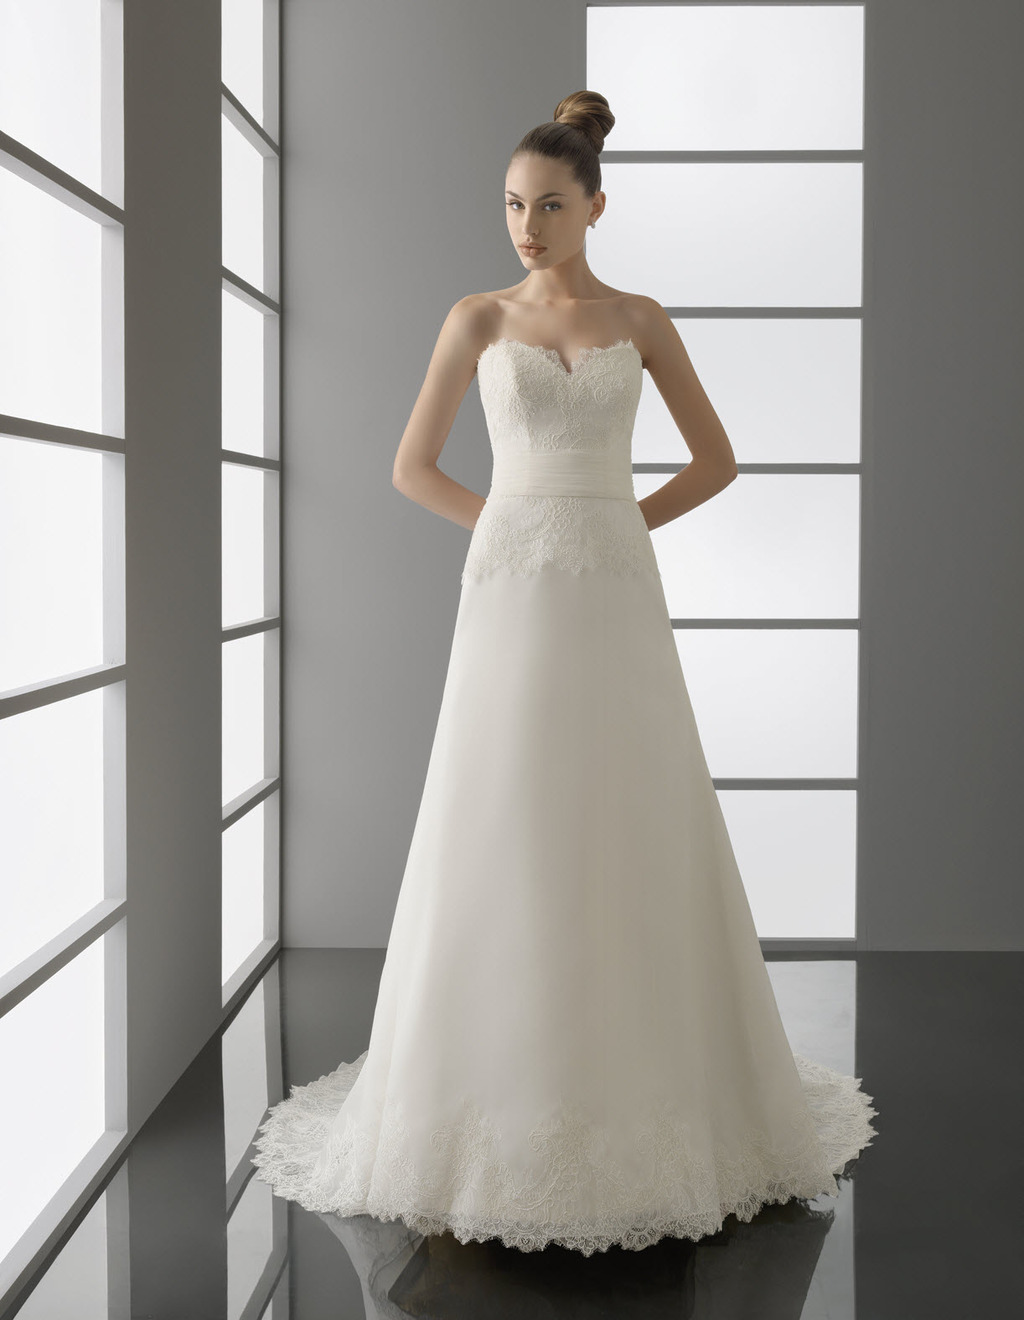 Paul-lace-wedding-dress-spring-2012-bridal-gowns-classic-style.full